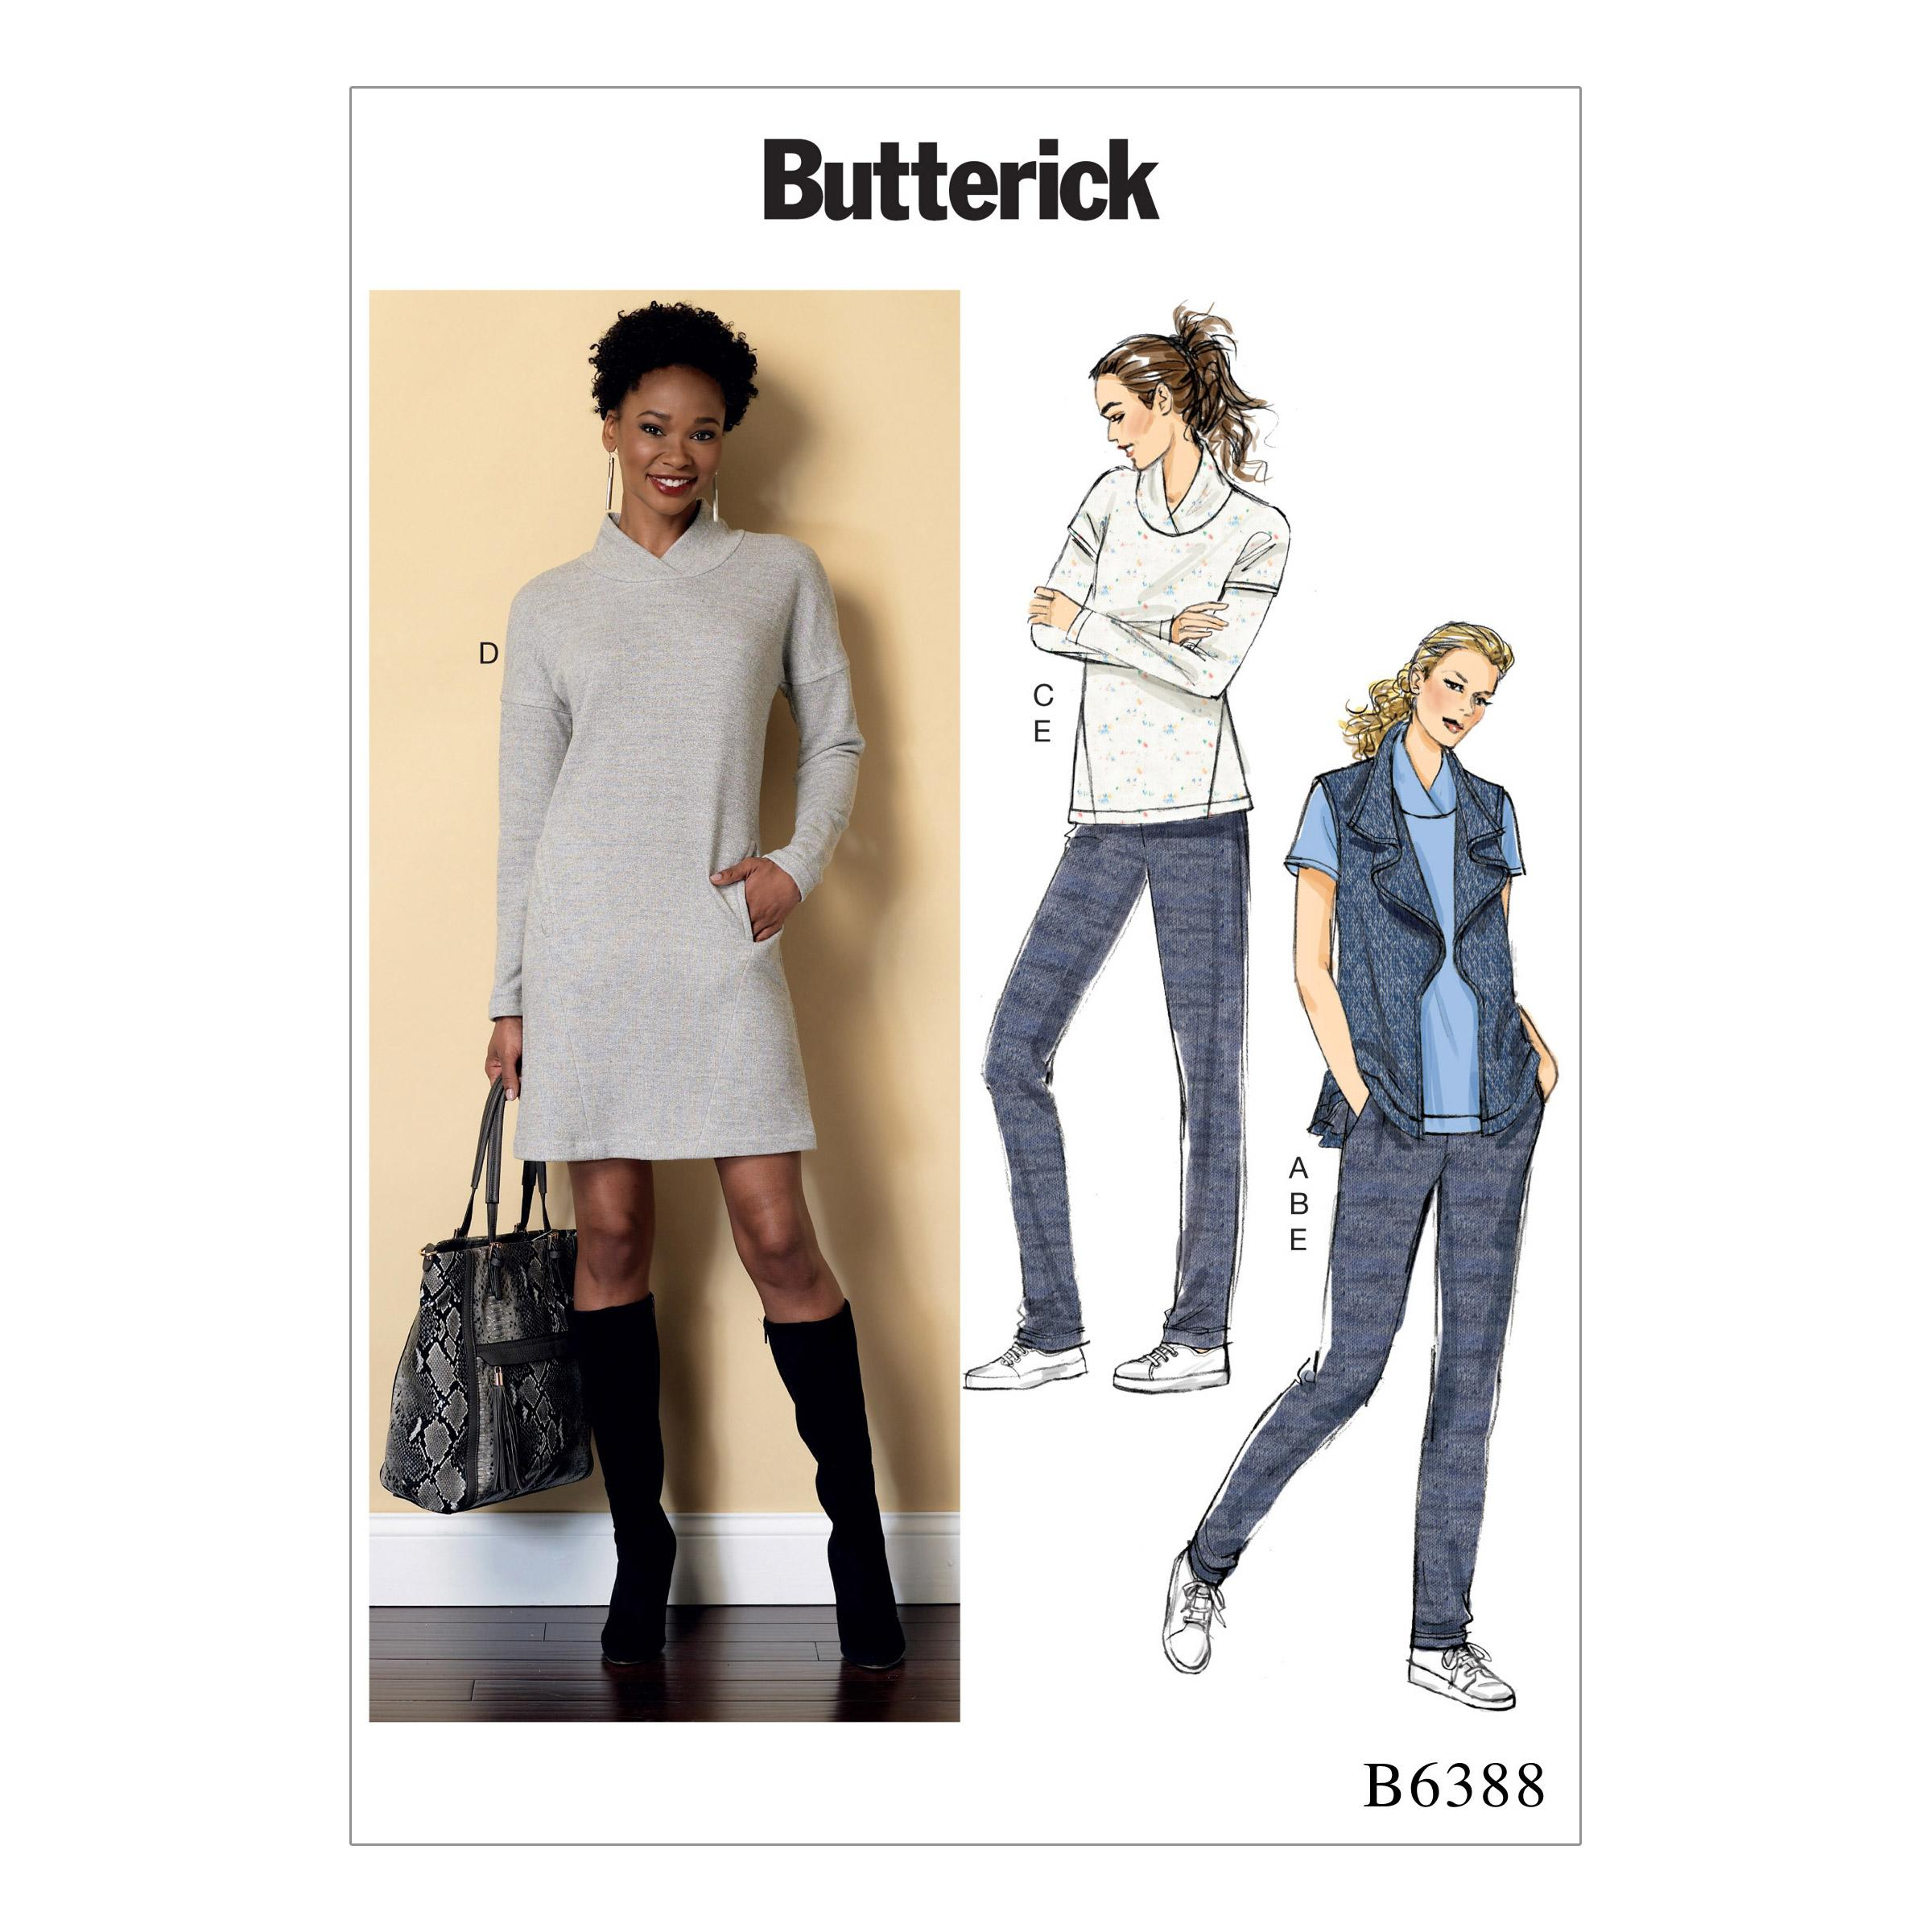 Butterick B6388 Misses' Lapped Collar Tops and Dress, Draped Collar Vest, and Pleated Pants